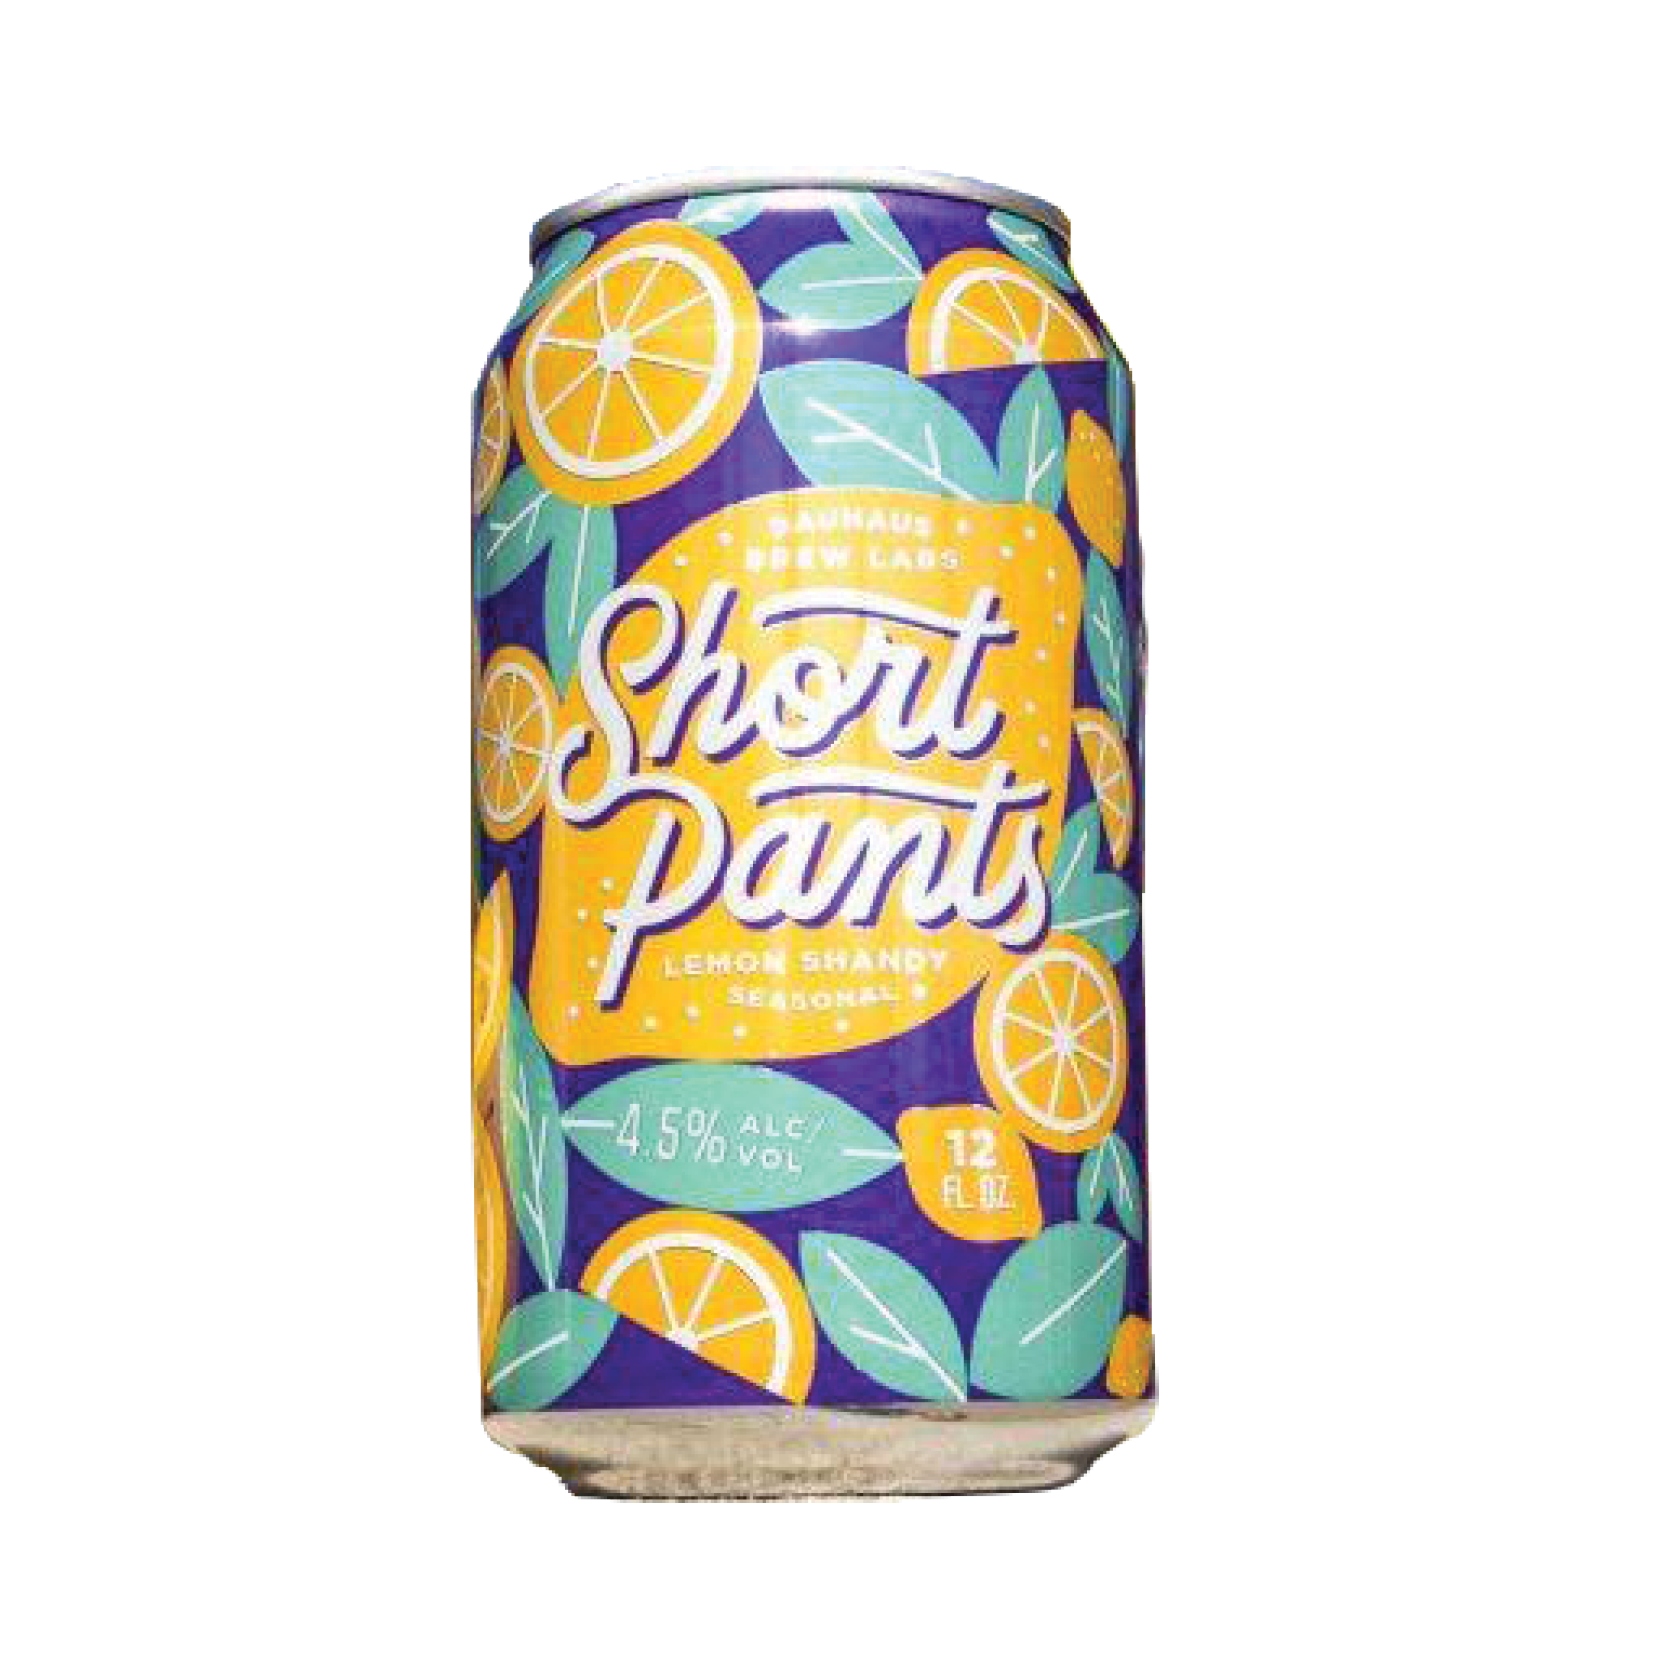 Bauhaus Brew Labs BAUHAUS SHORT PANTS LEMON SHANDY 6 PK CAN